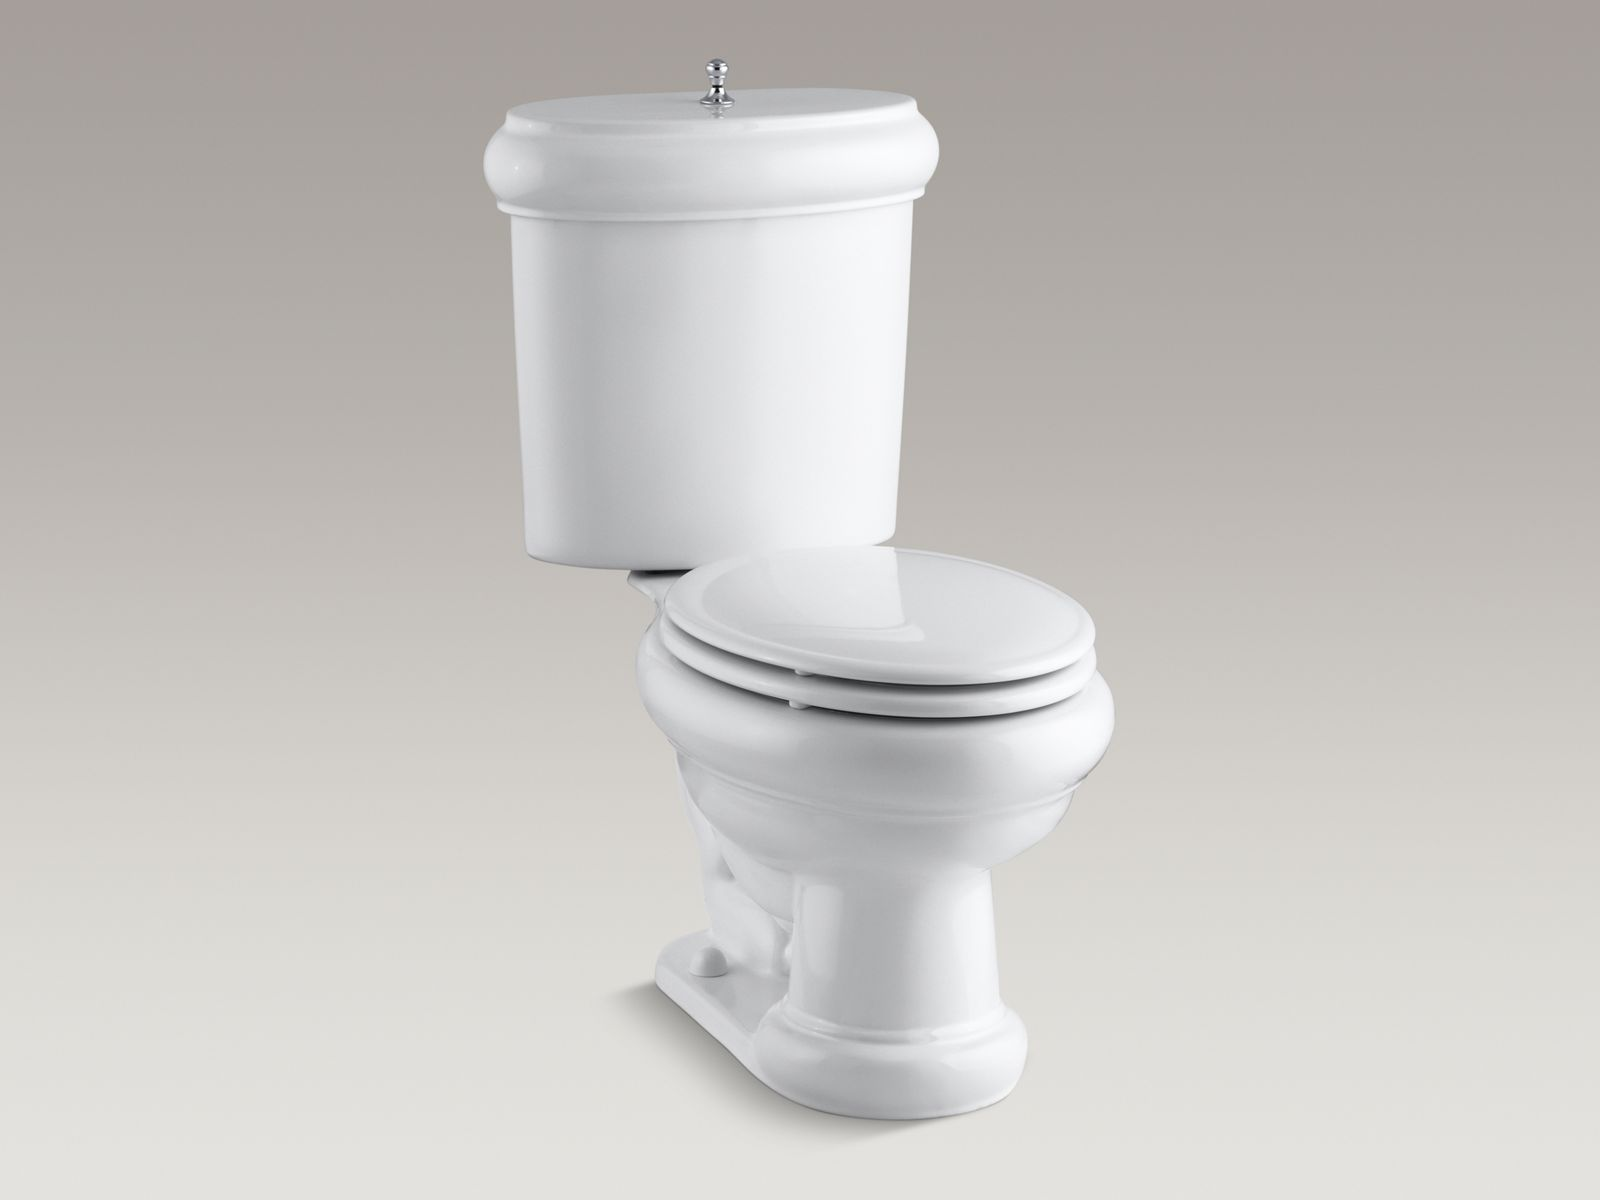 KOHLERK 3555Revival Two Piece Elongated 16 GPF Toilet With Seat KOHLER